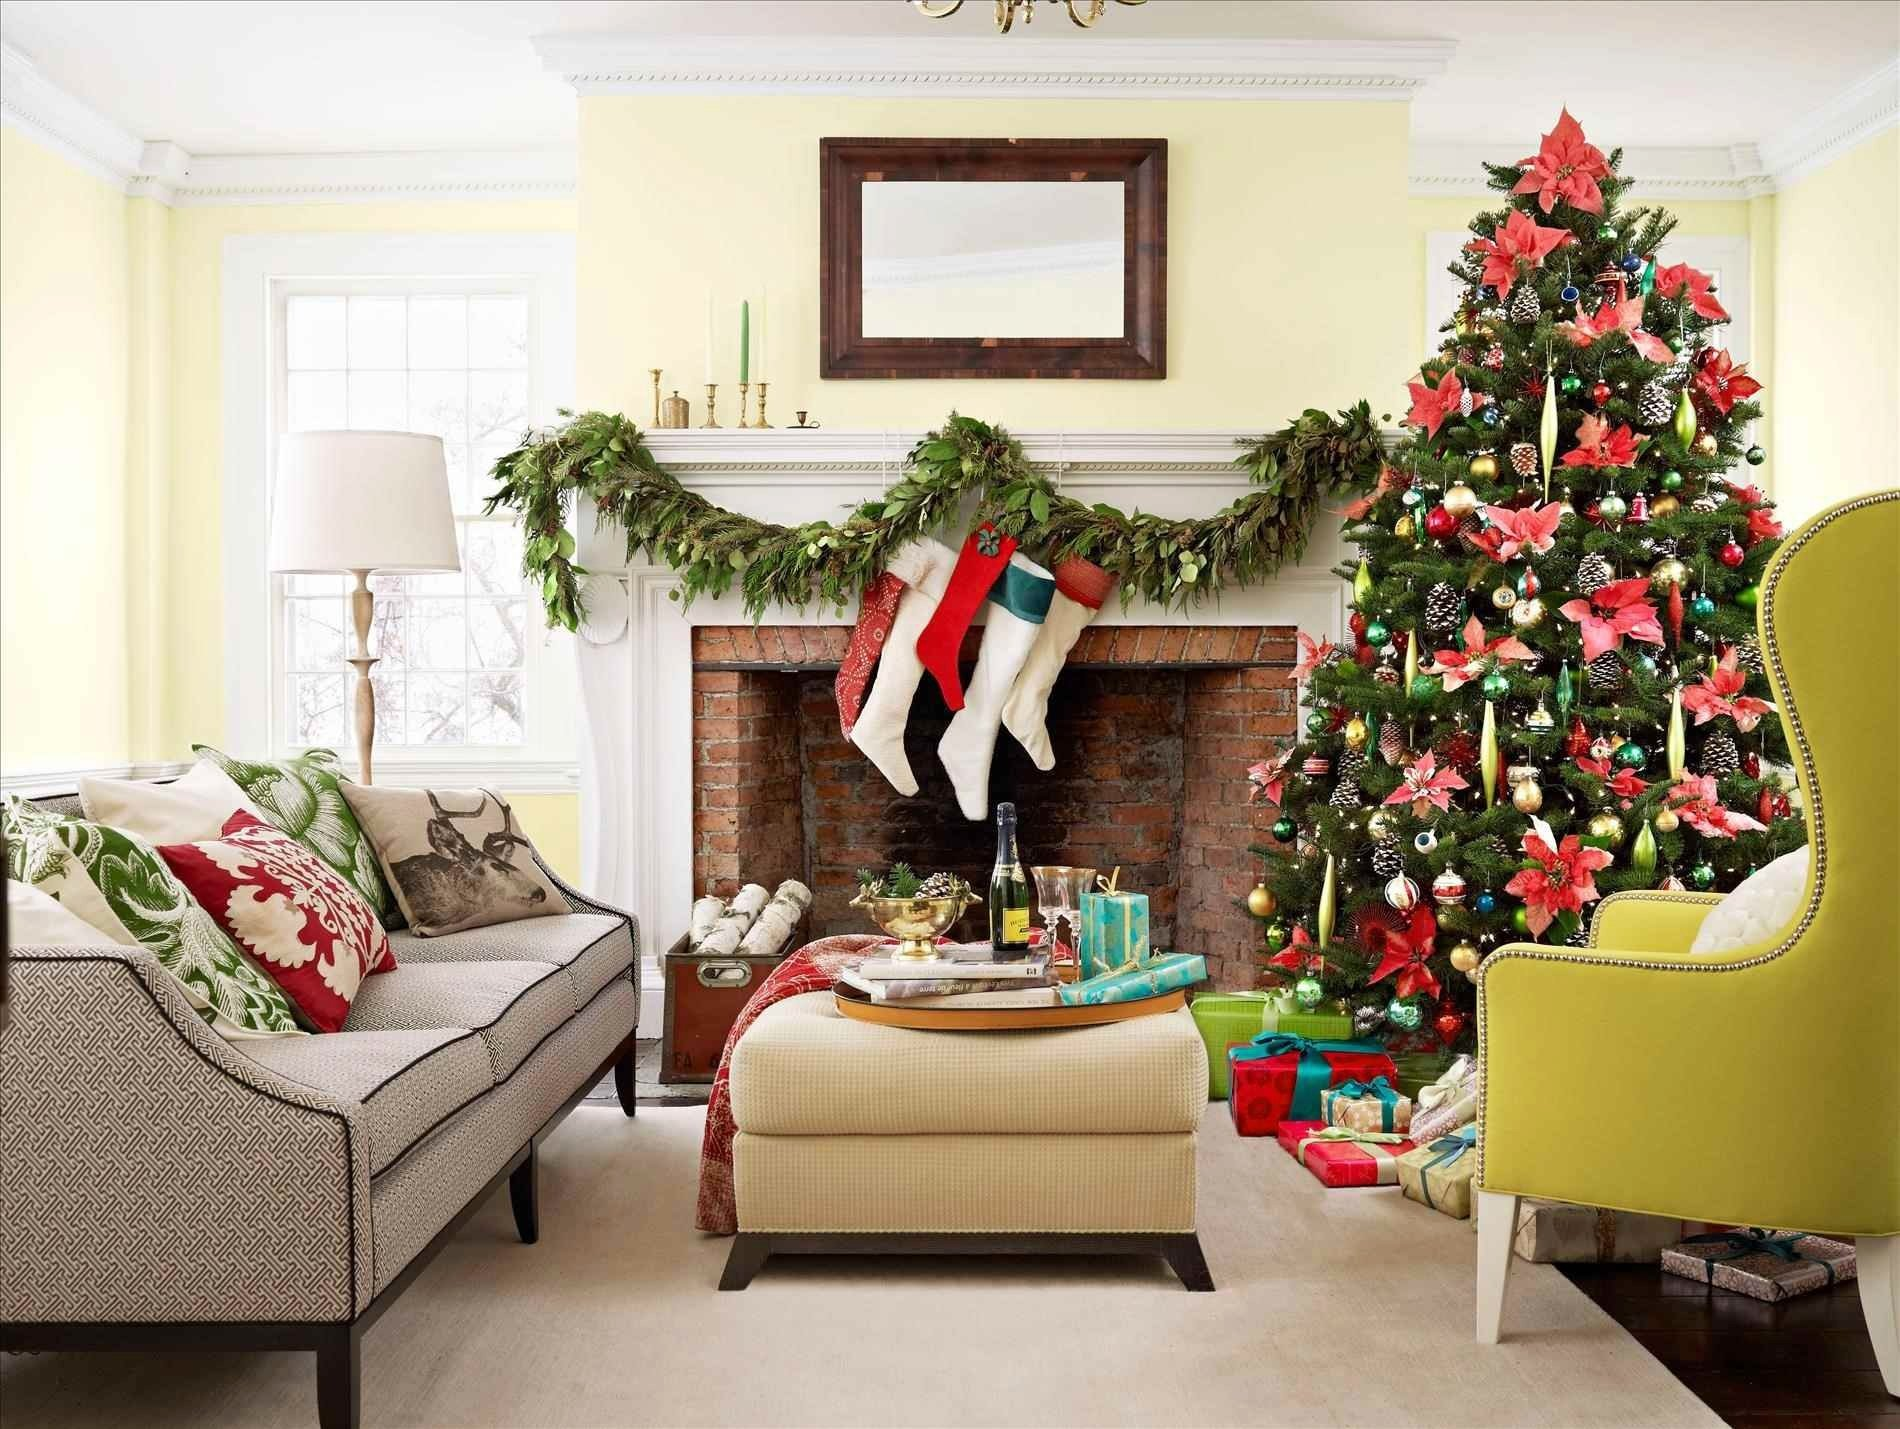 10 Stylish Christmas Living Room Decorating Ideas christmas living room decor bring the christmas joy into our